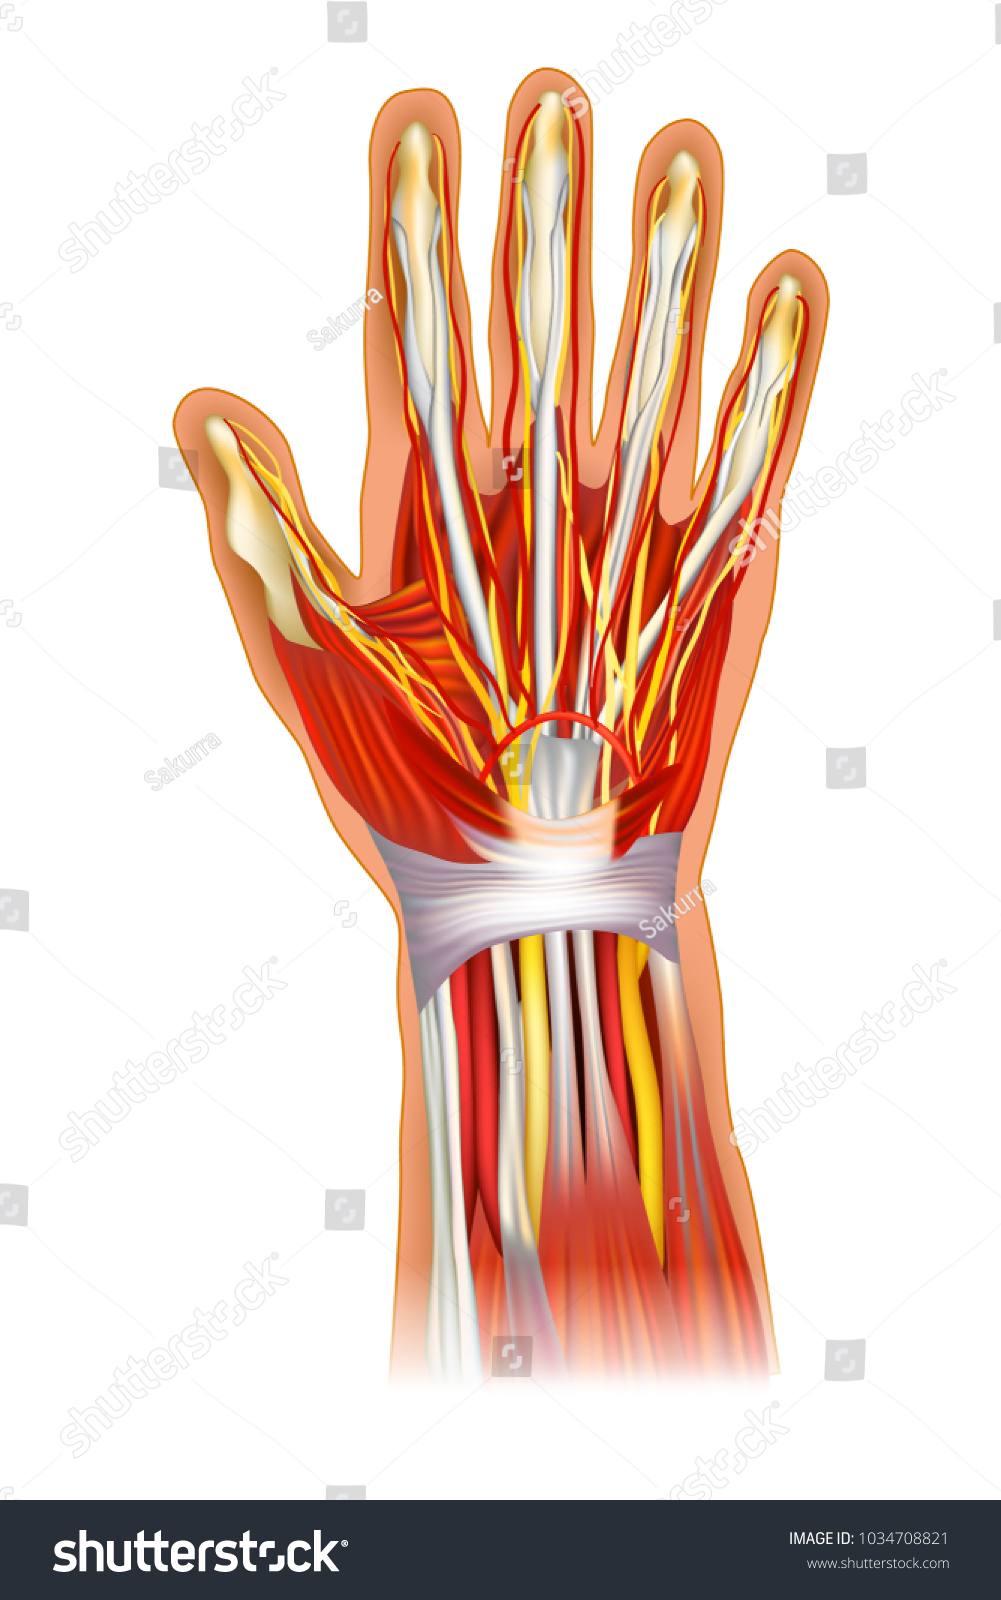 Human Hand Anatomy Illustration Anatomy Wrist Stock Vector ...